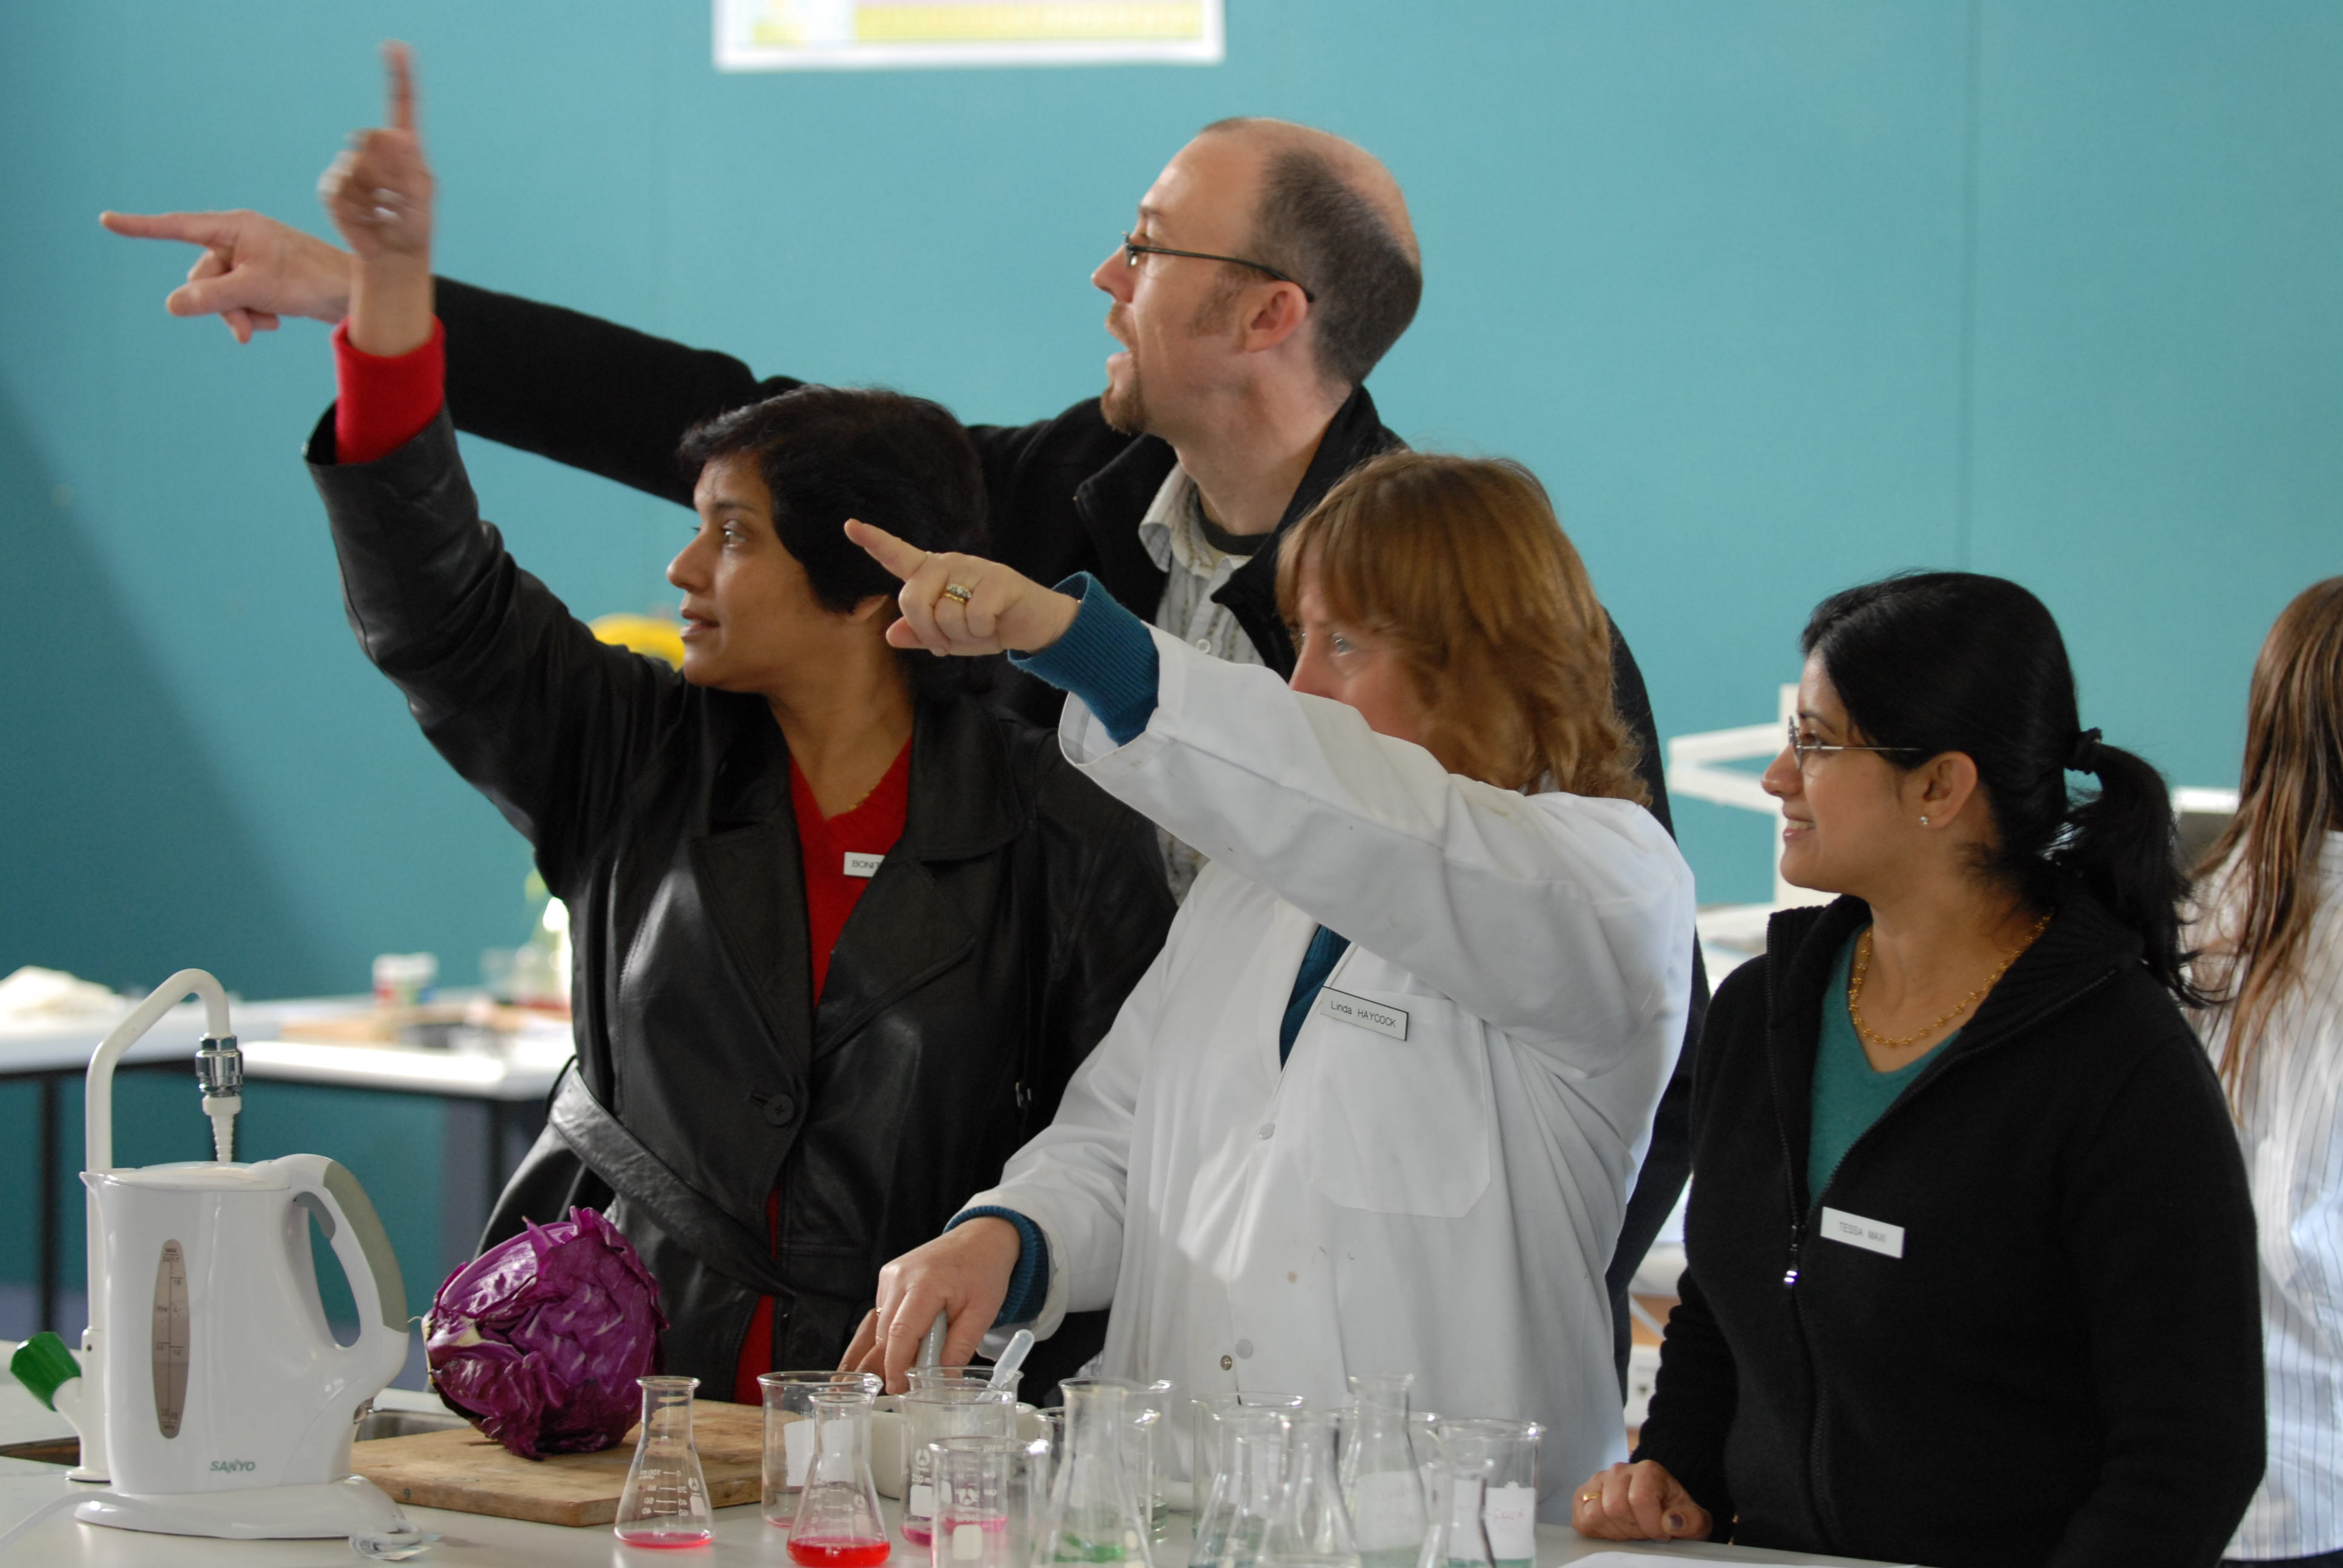 Science department staff on open day!.......bottle of wine for the best caption here